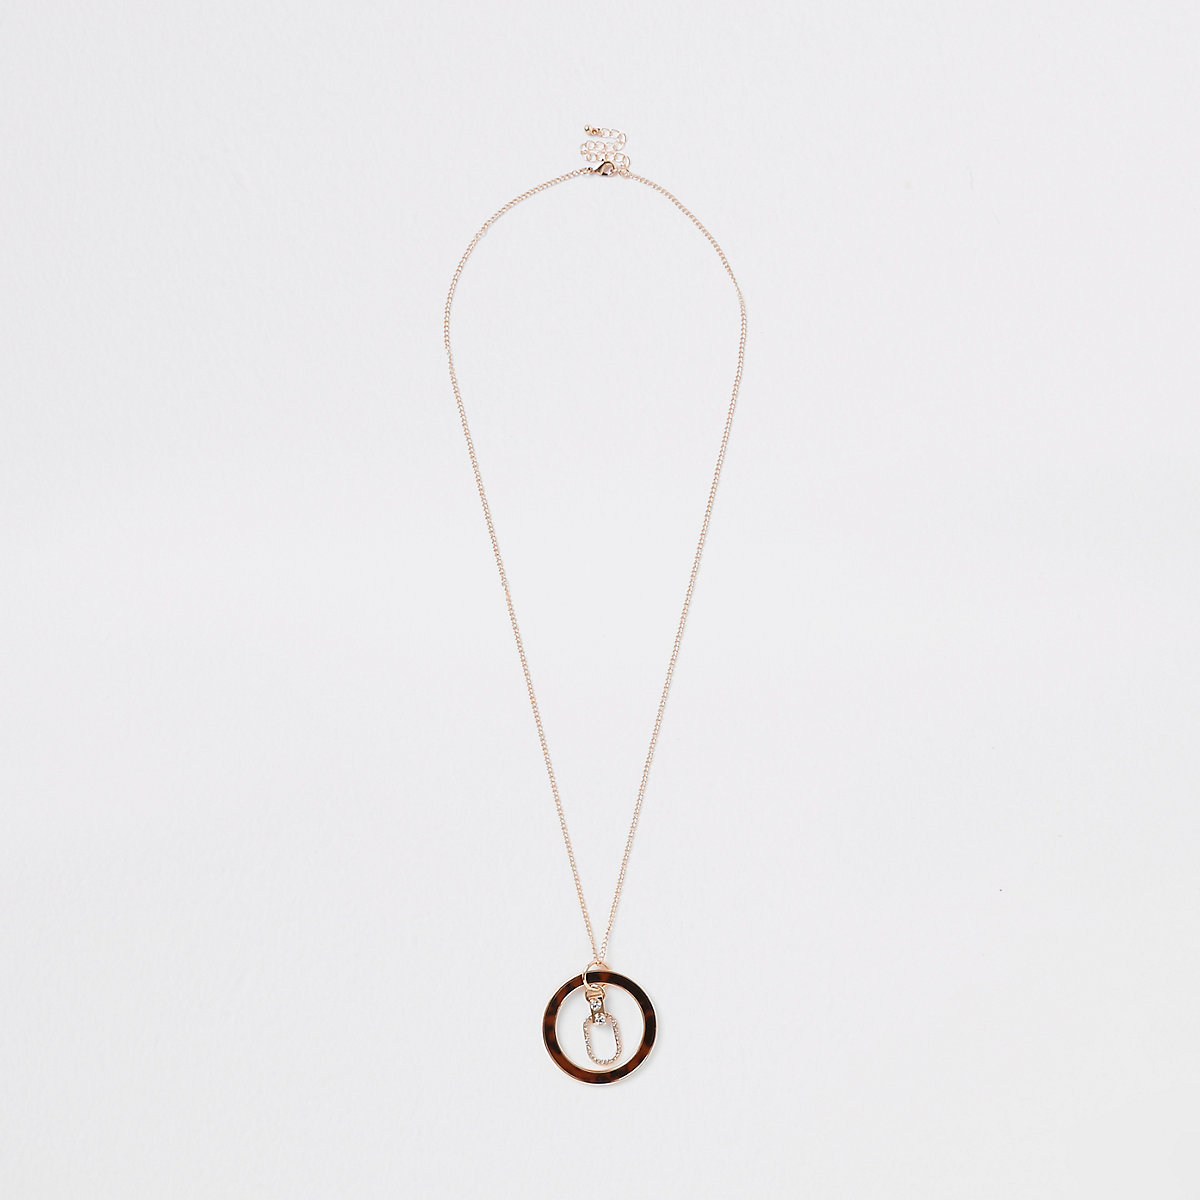 Gold tone tortoise shell circle necklace